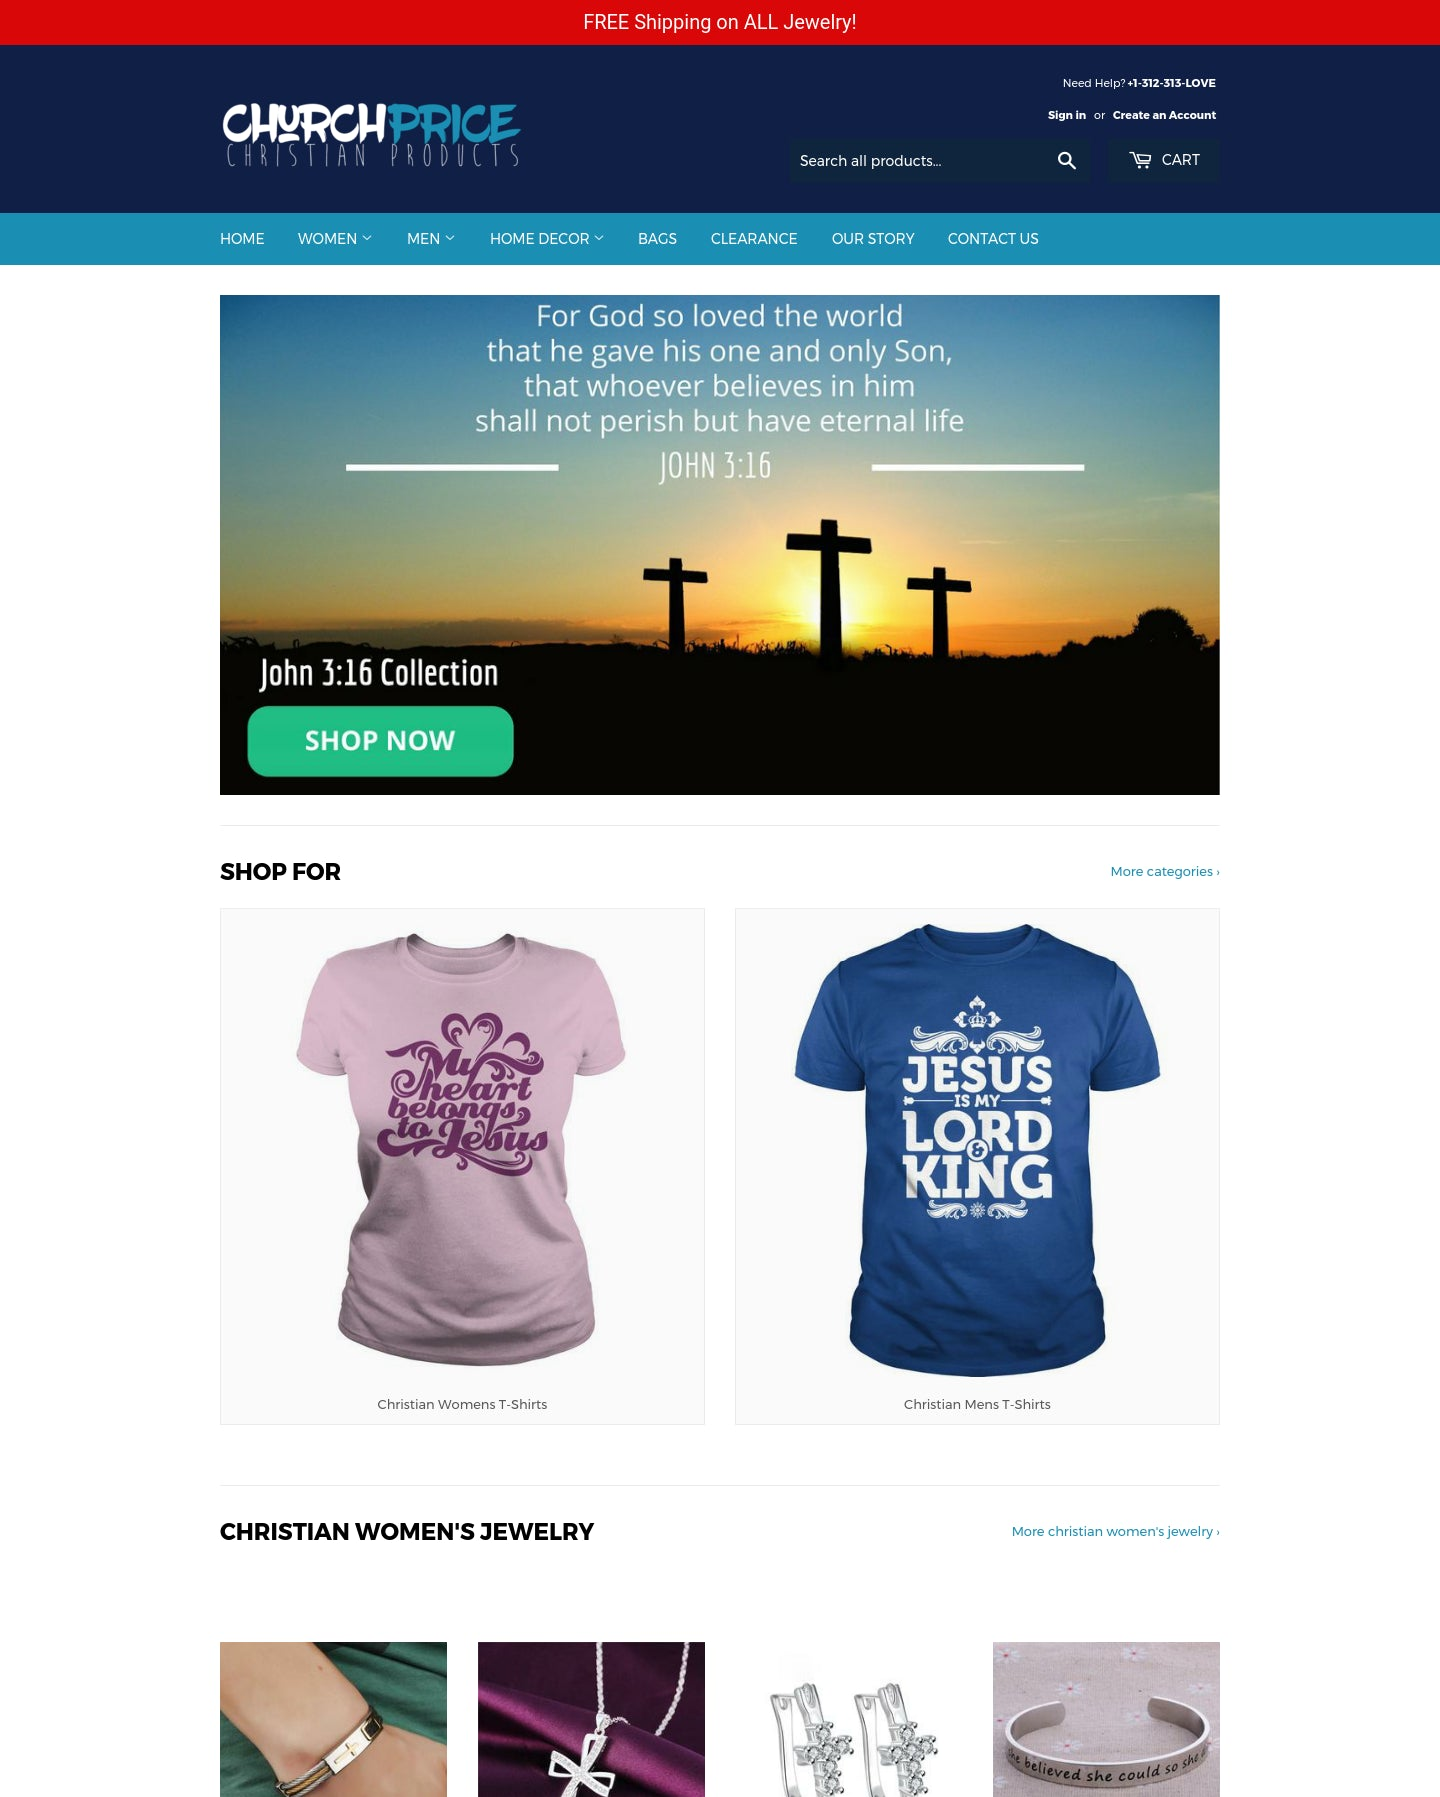 ChurchPrice - Christian Clothing, Jewelry & Home Decor Screenshot - 1